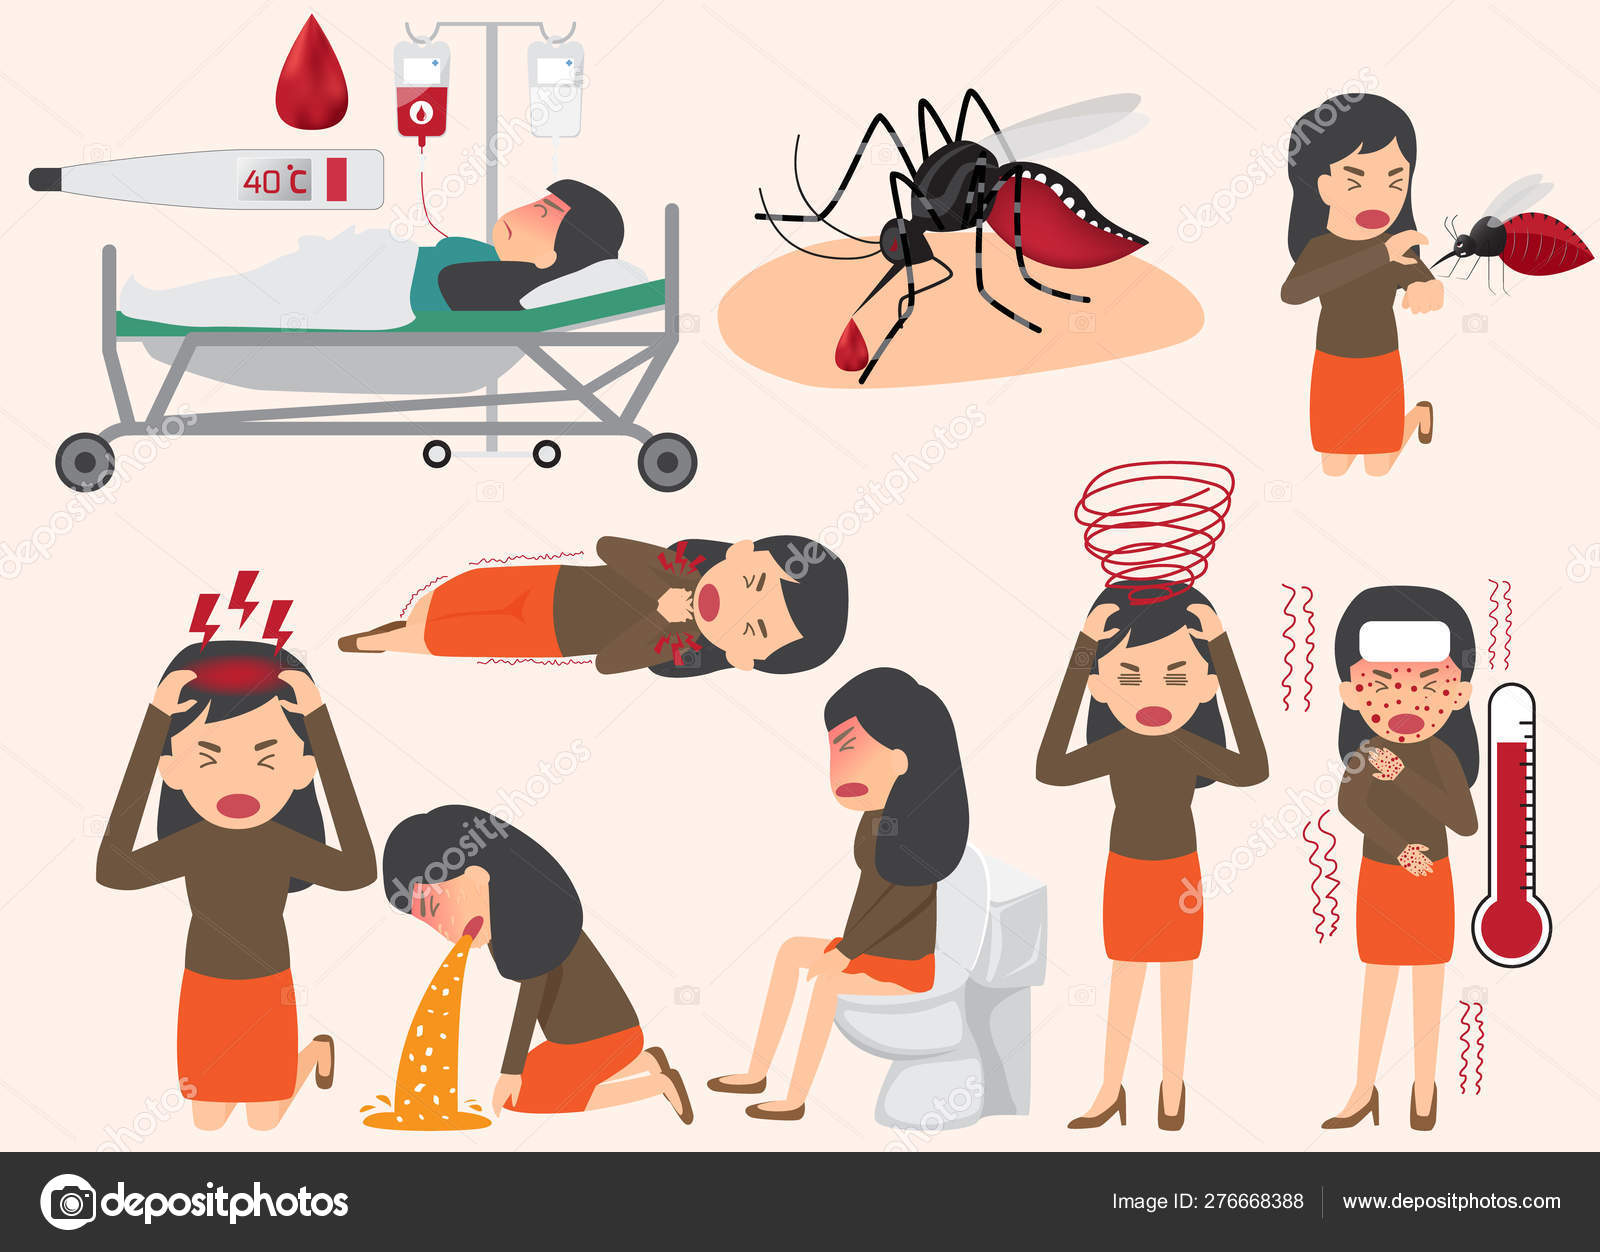 Template design of details dengue fever or flu and symptoms